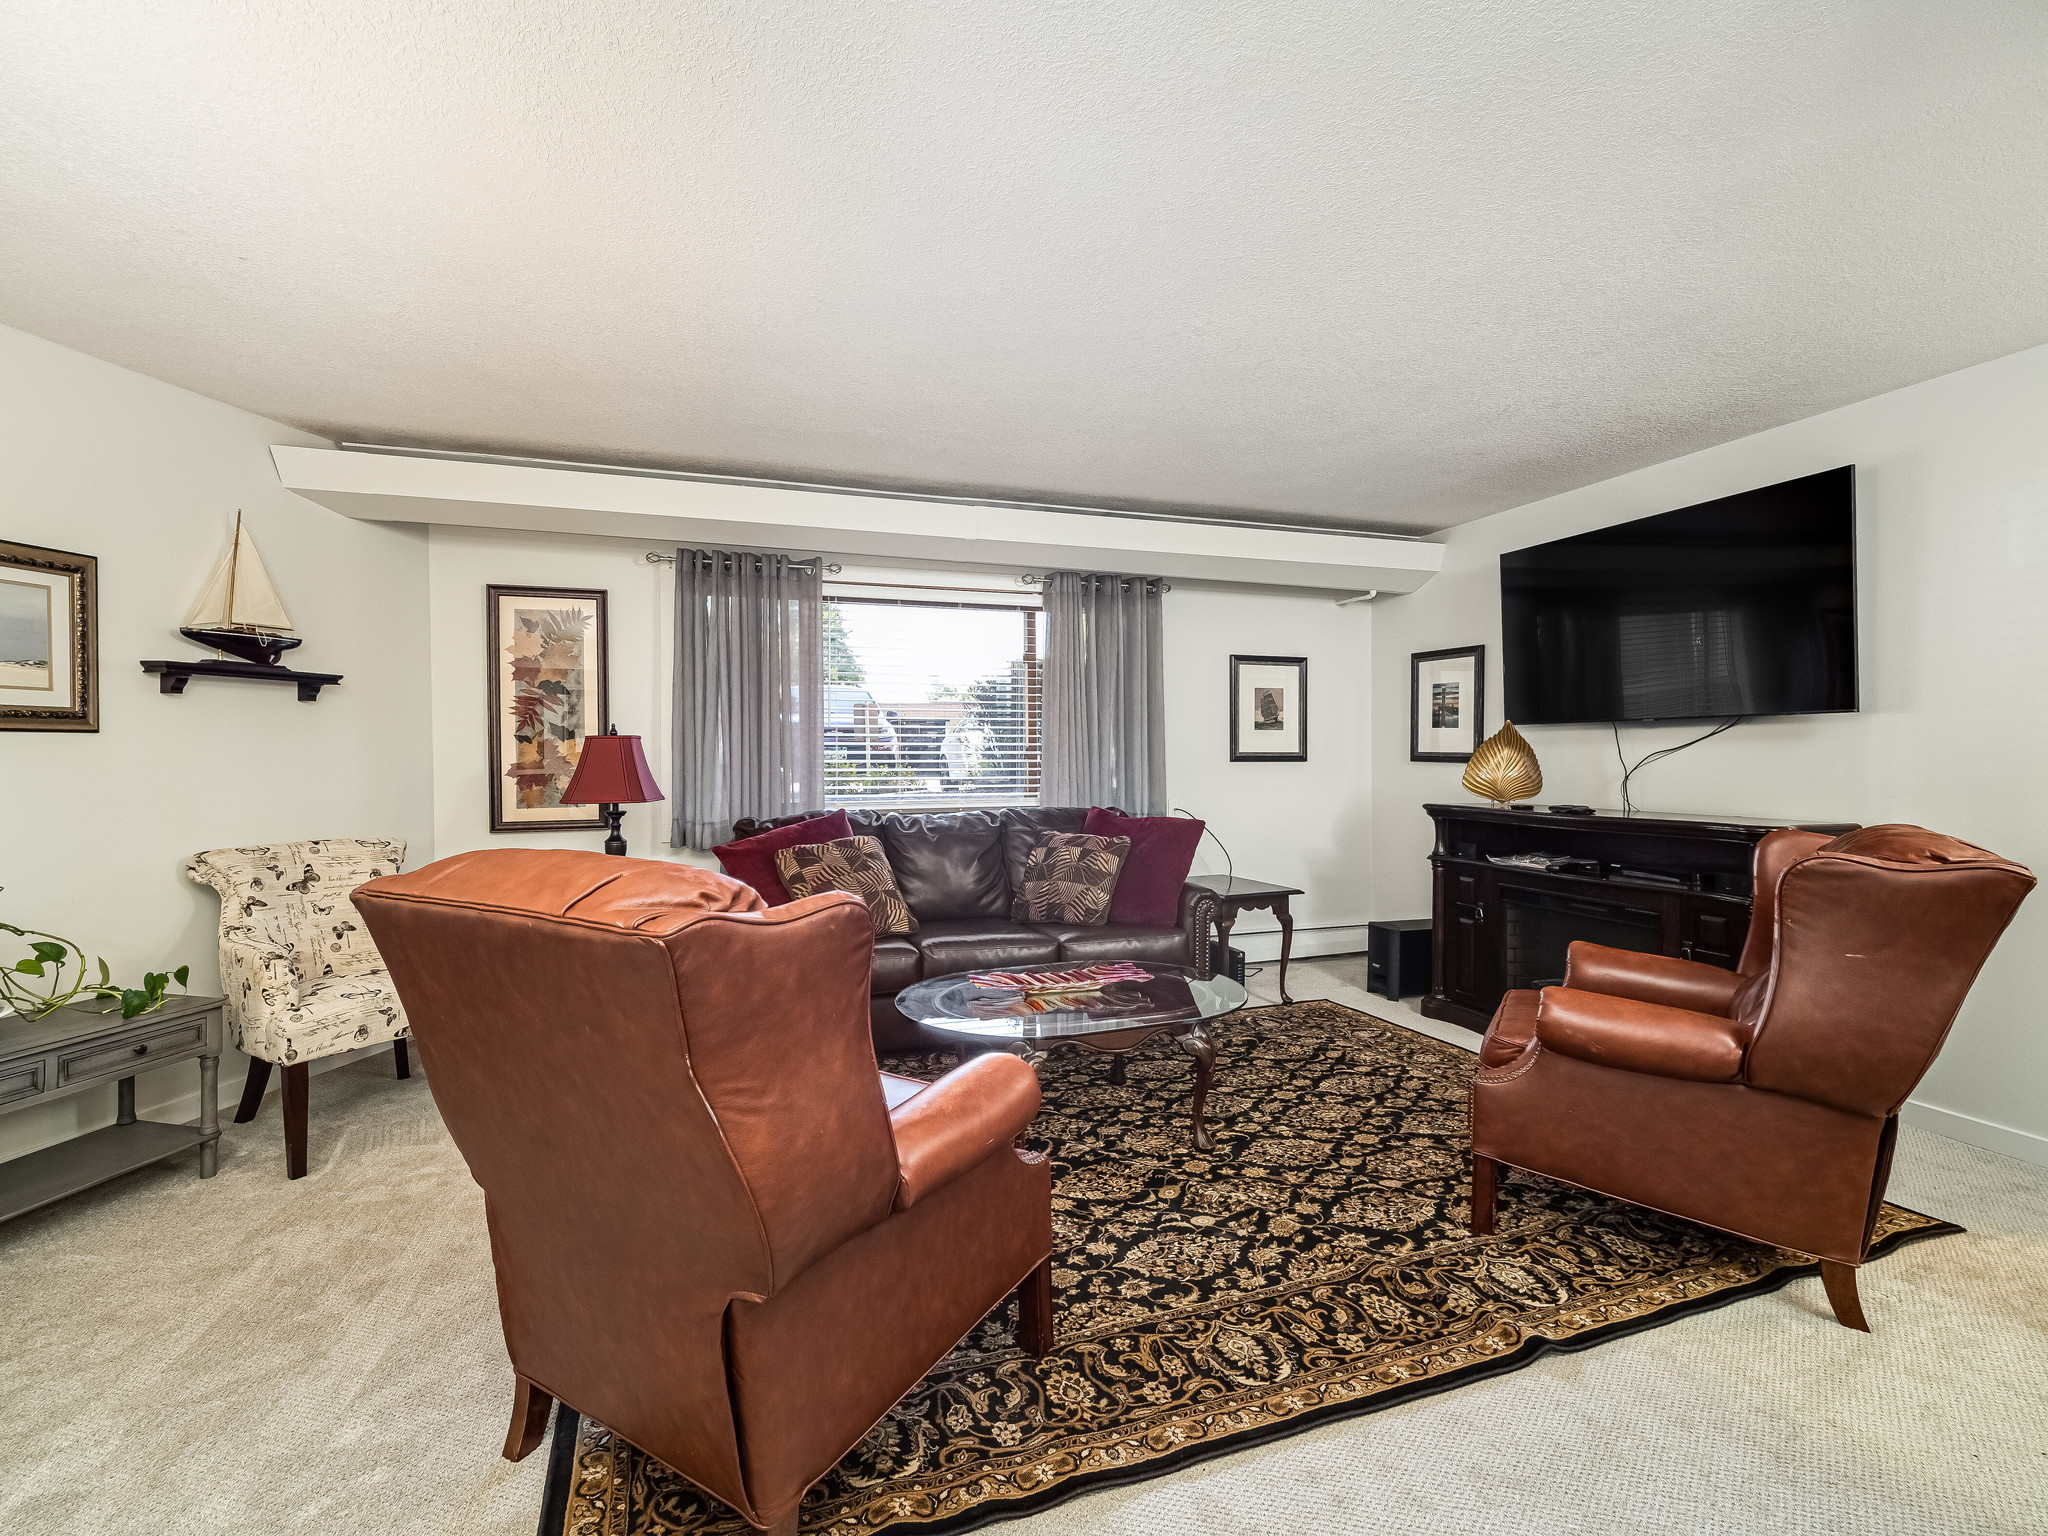 Remodeled 2-Bedroom Condo In Mound